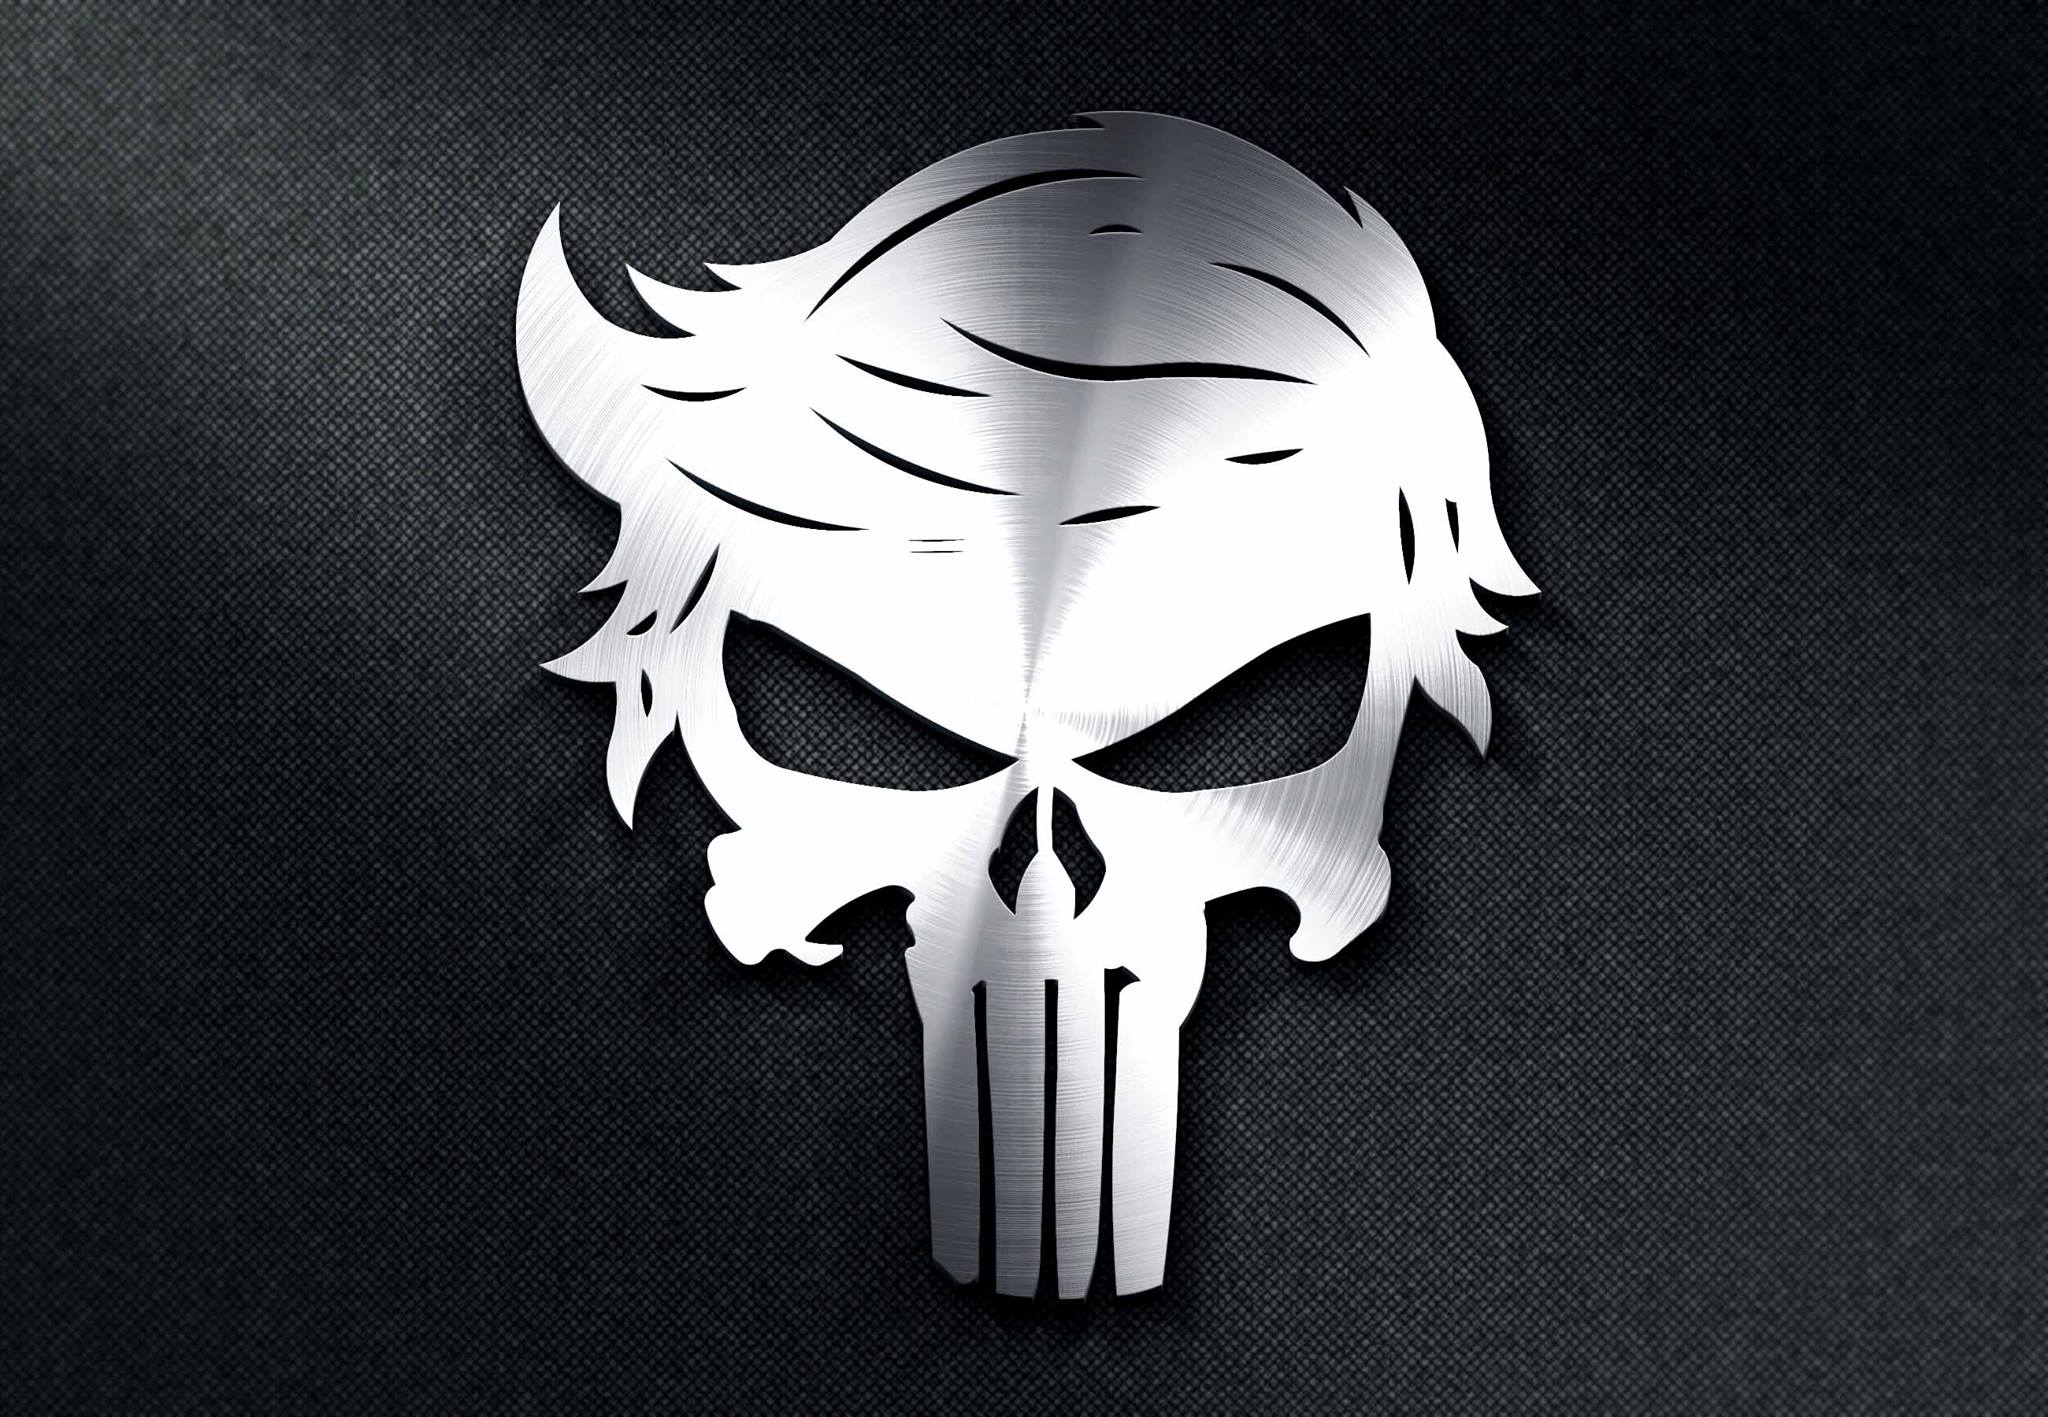 Trump Punisher Skull Dxf File Free Download 3axis Co